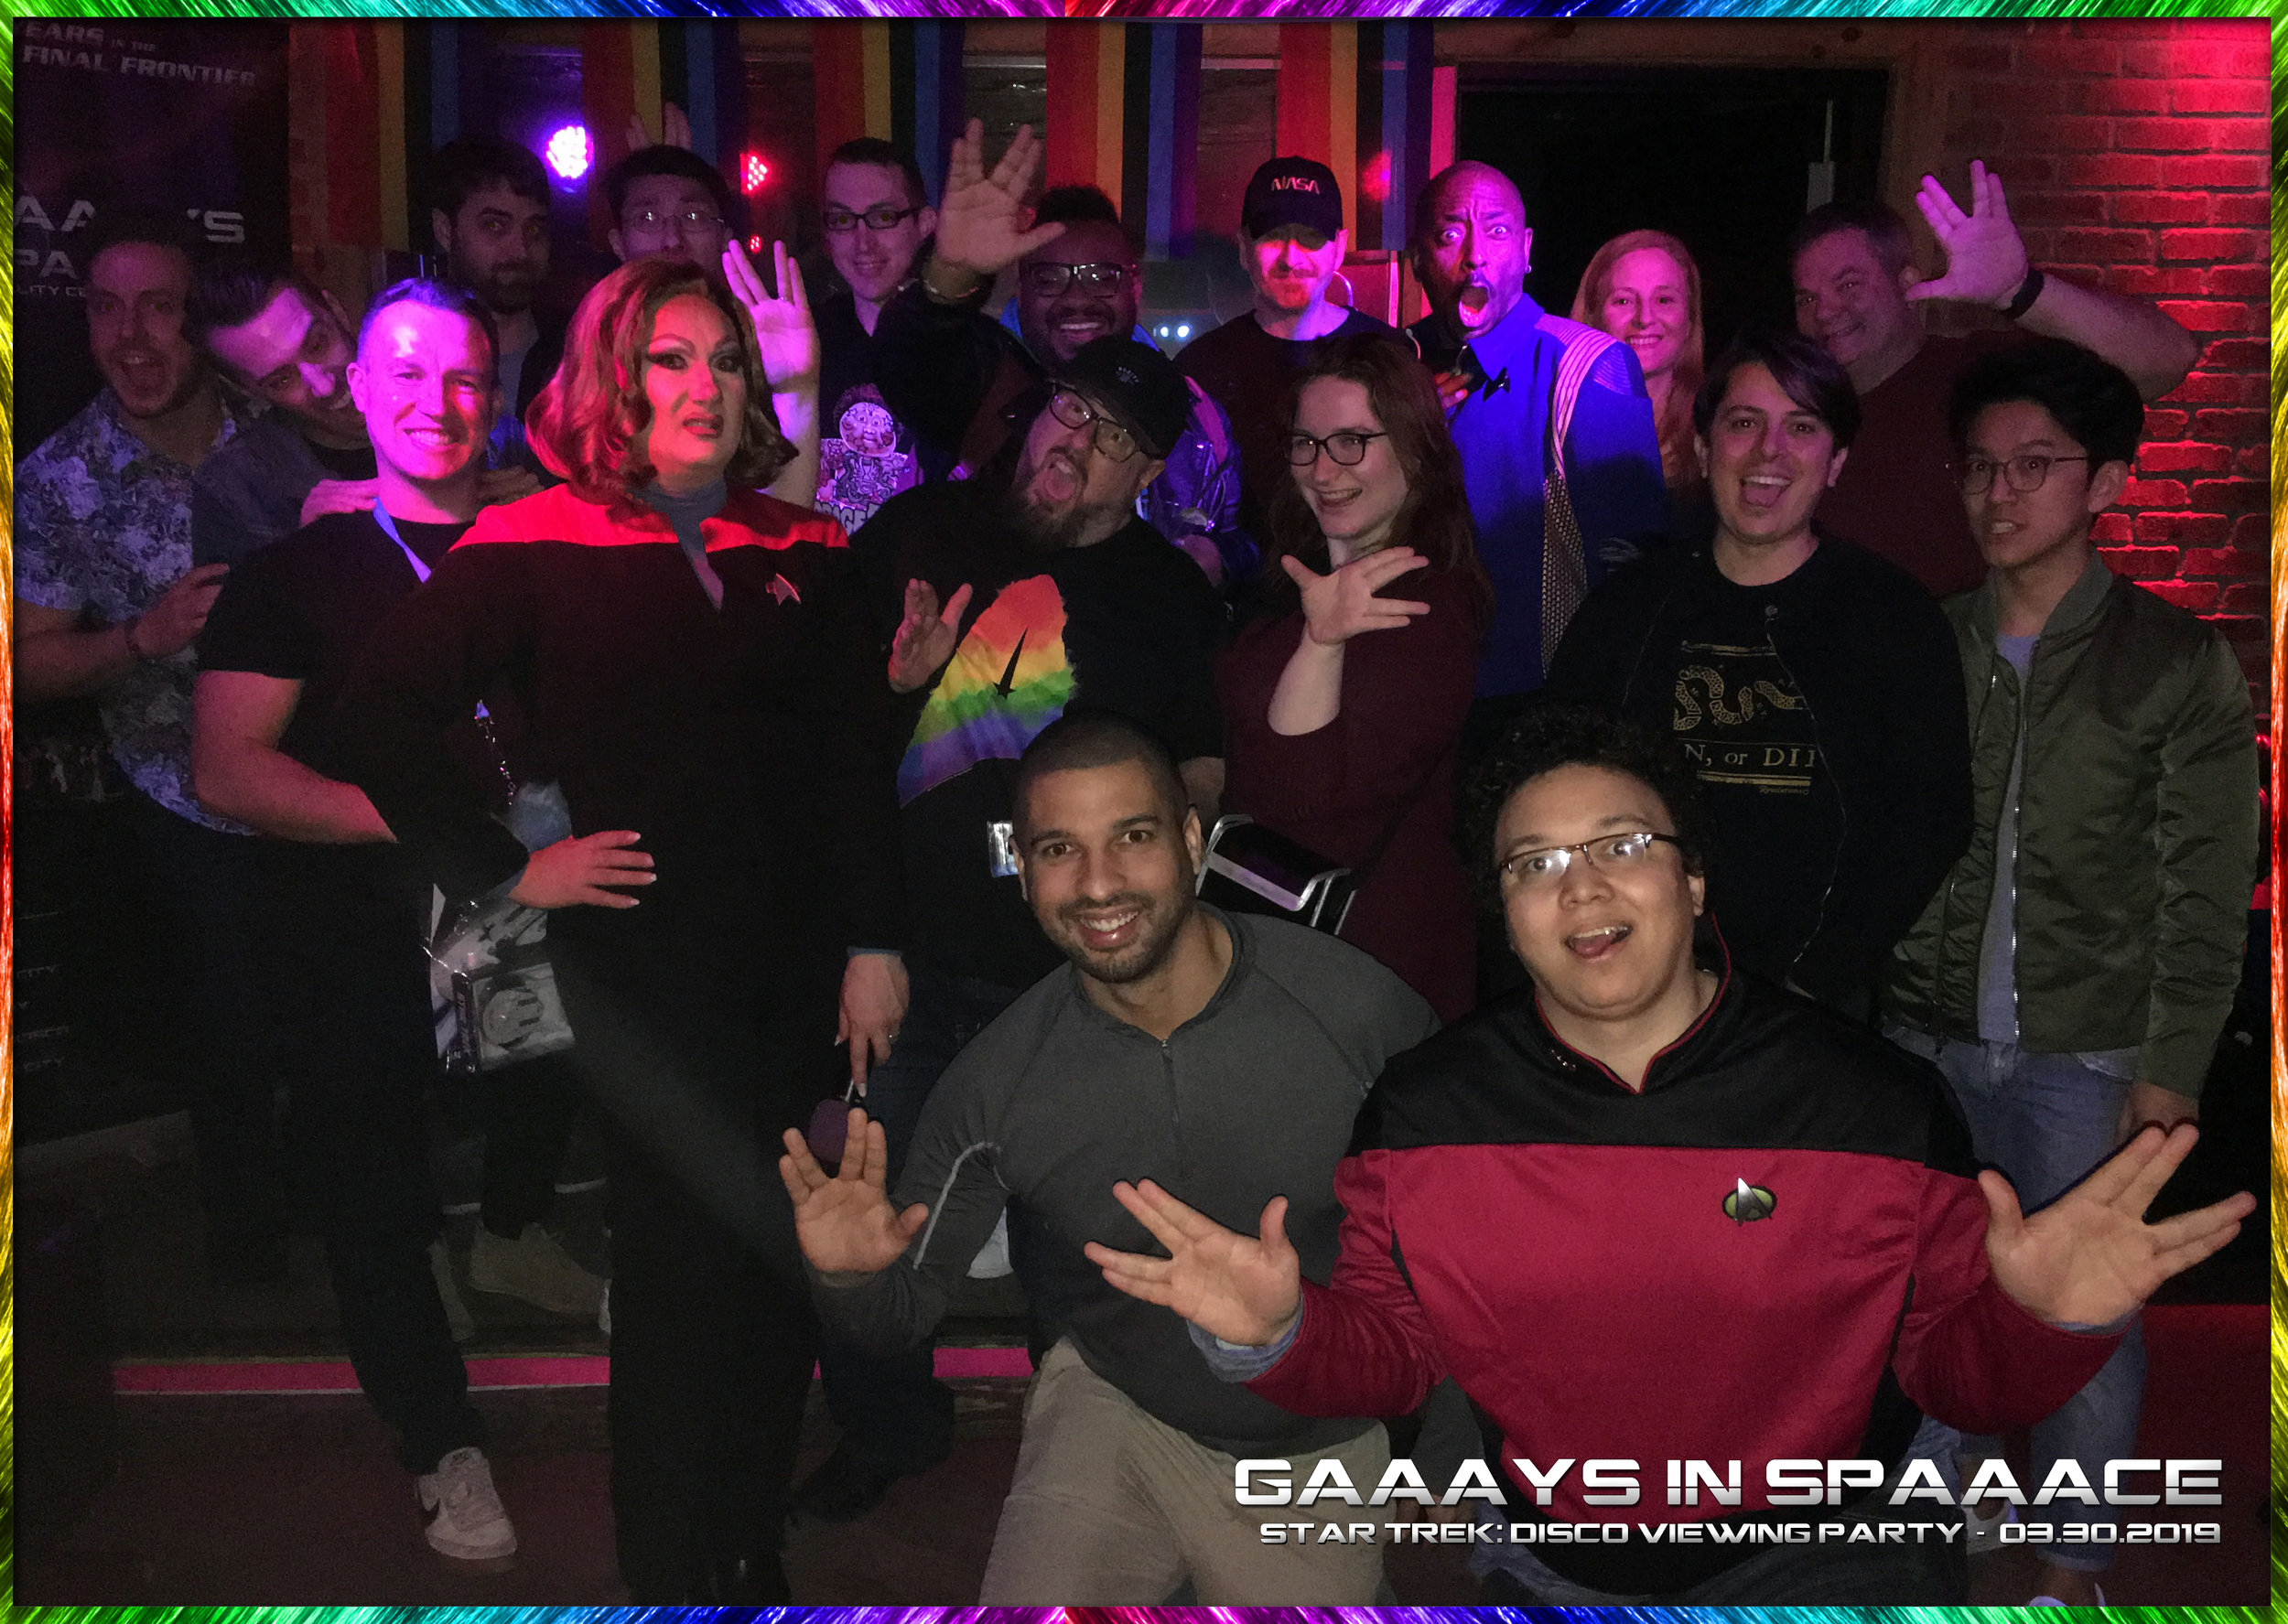 1-03-30-19-GIS-DISCO-VIEWING-PARTY.jpg